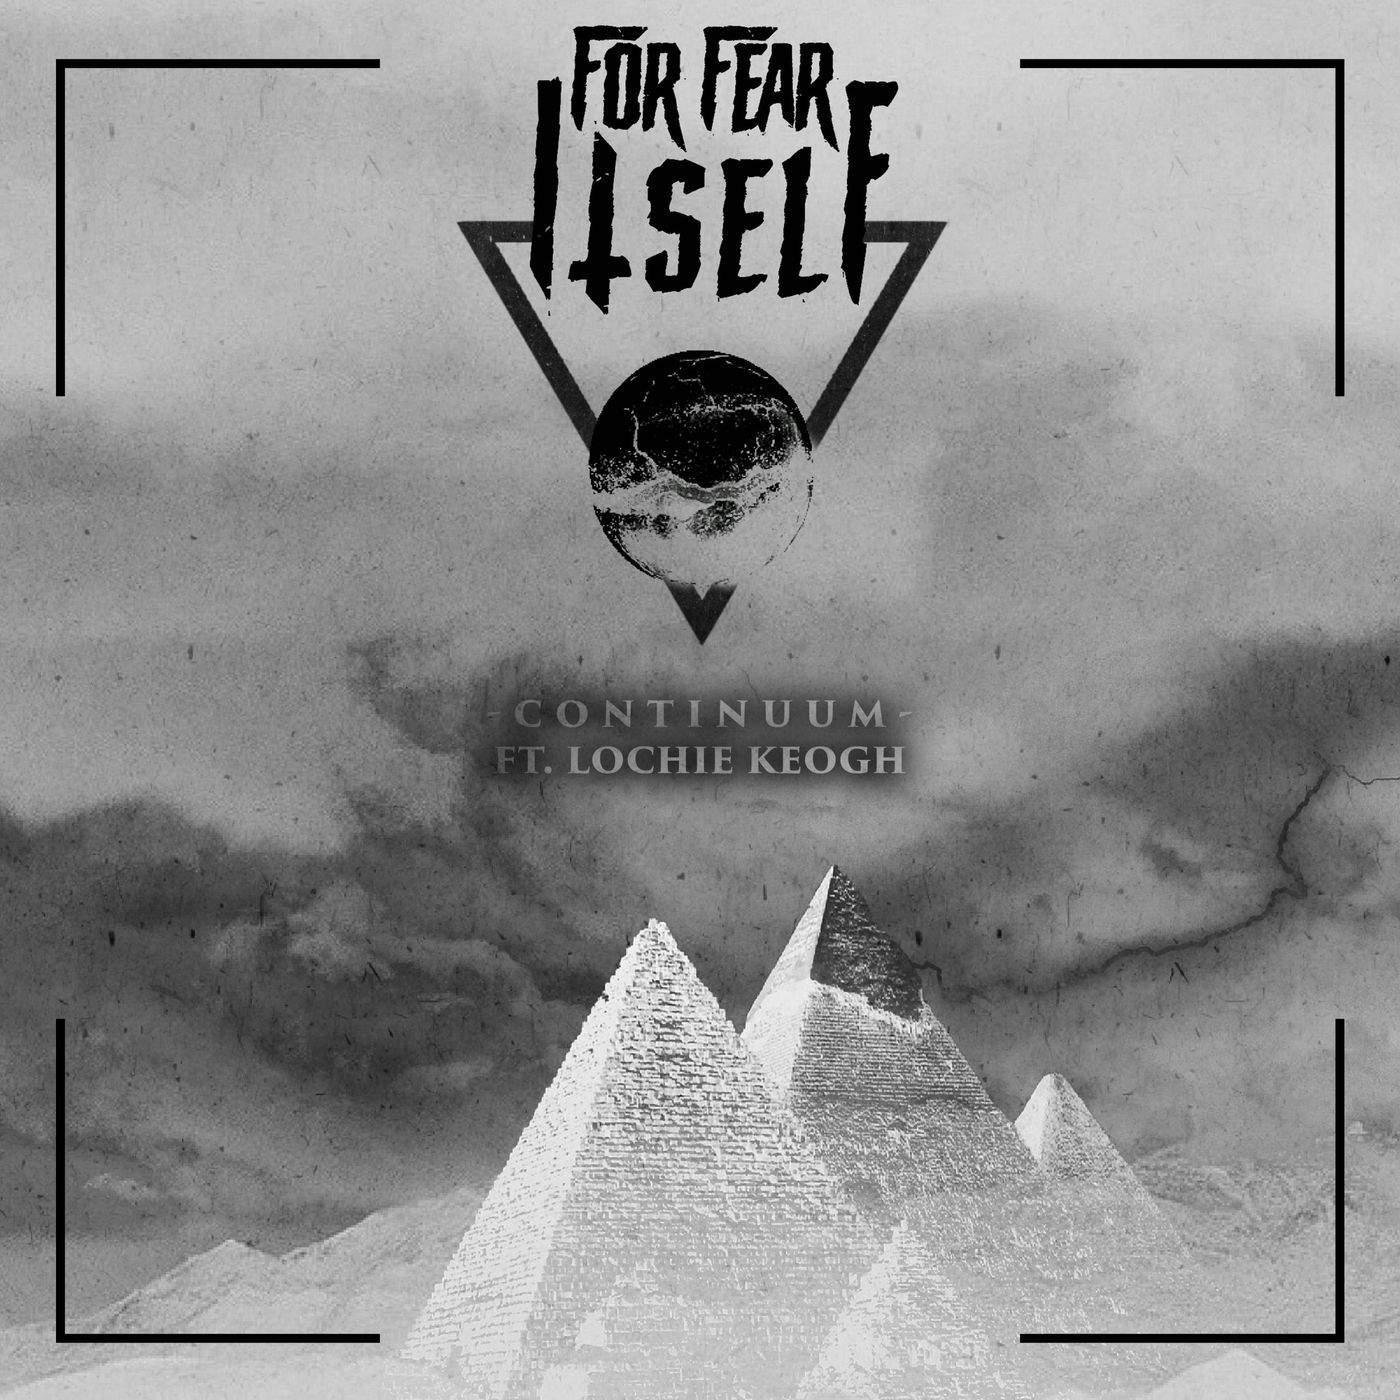 For Fear Itself - Continuum [single] (2021)